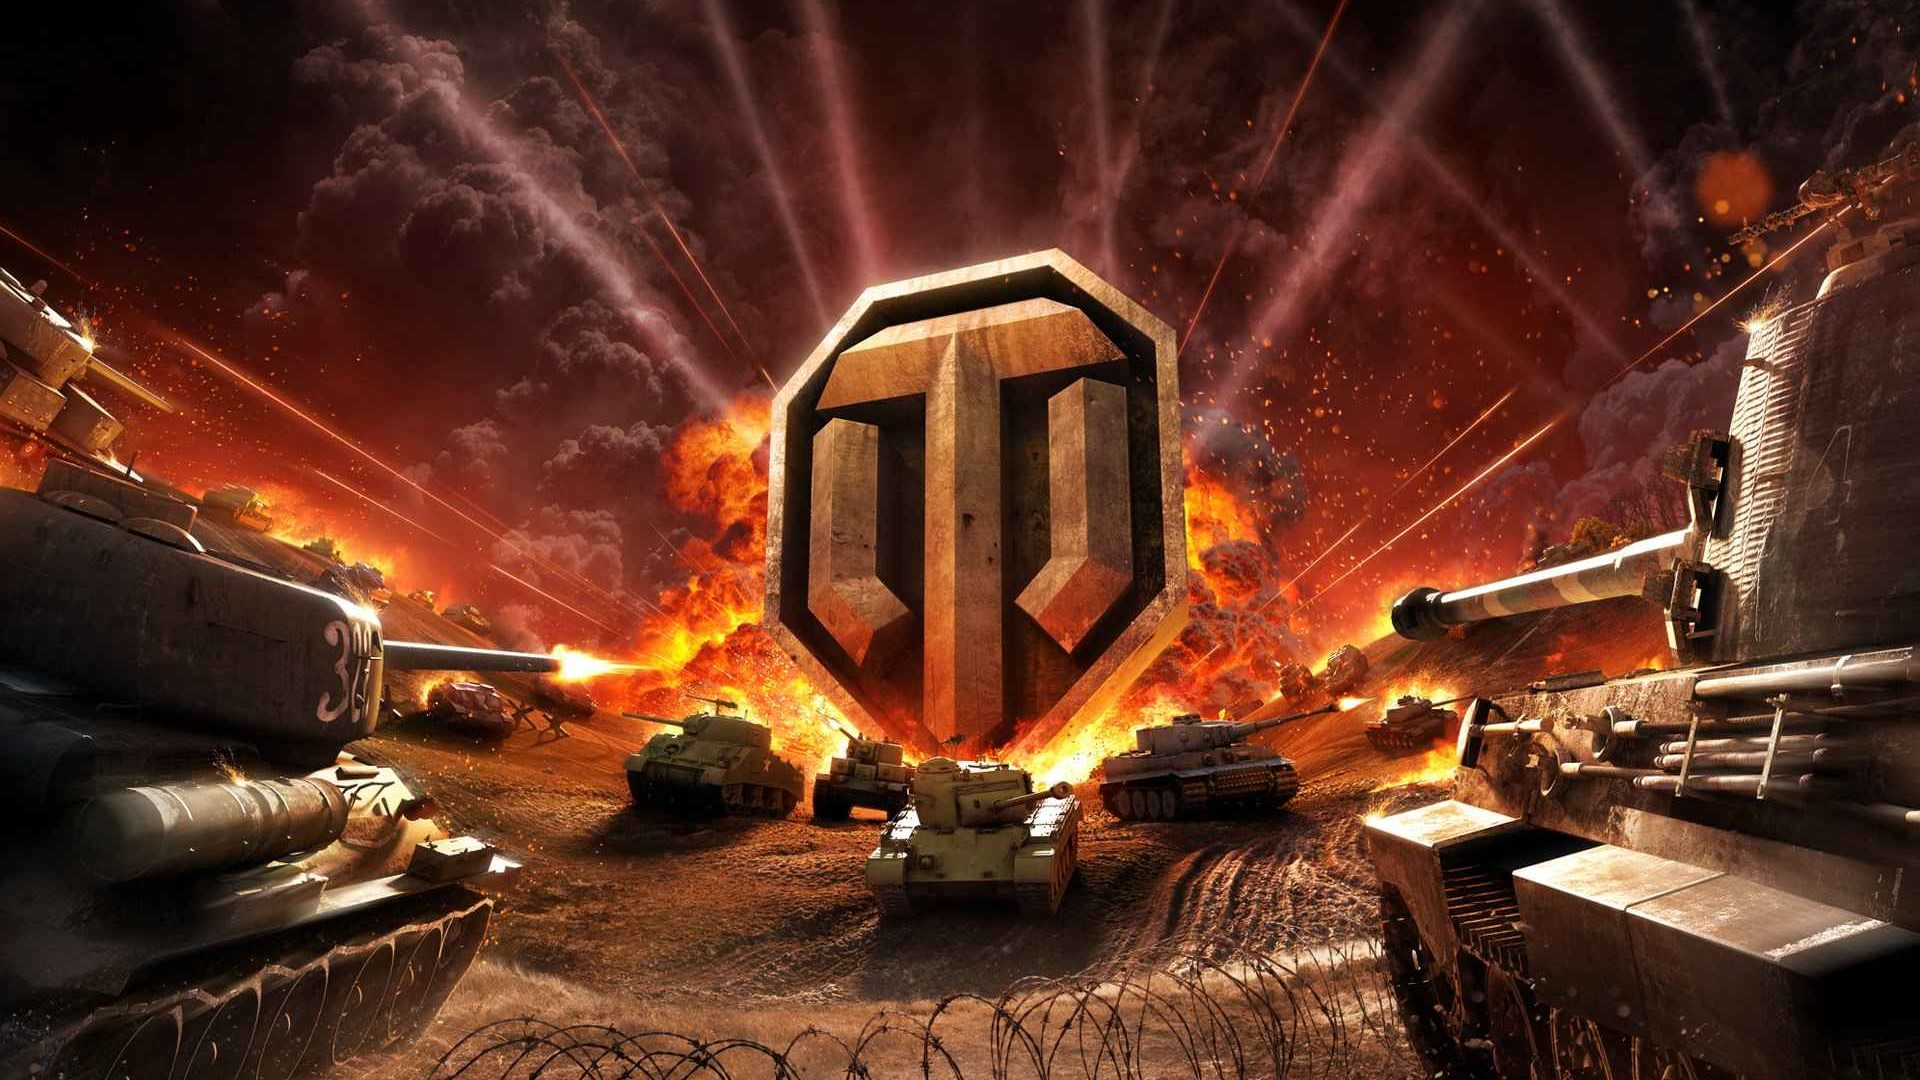 World Of Tanks Wallpaper Background Hd Wallpaper Background